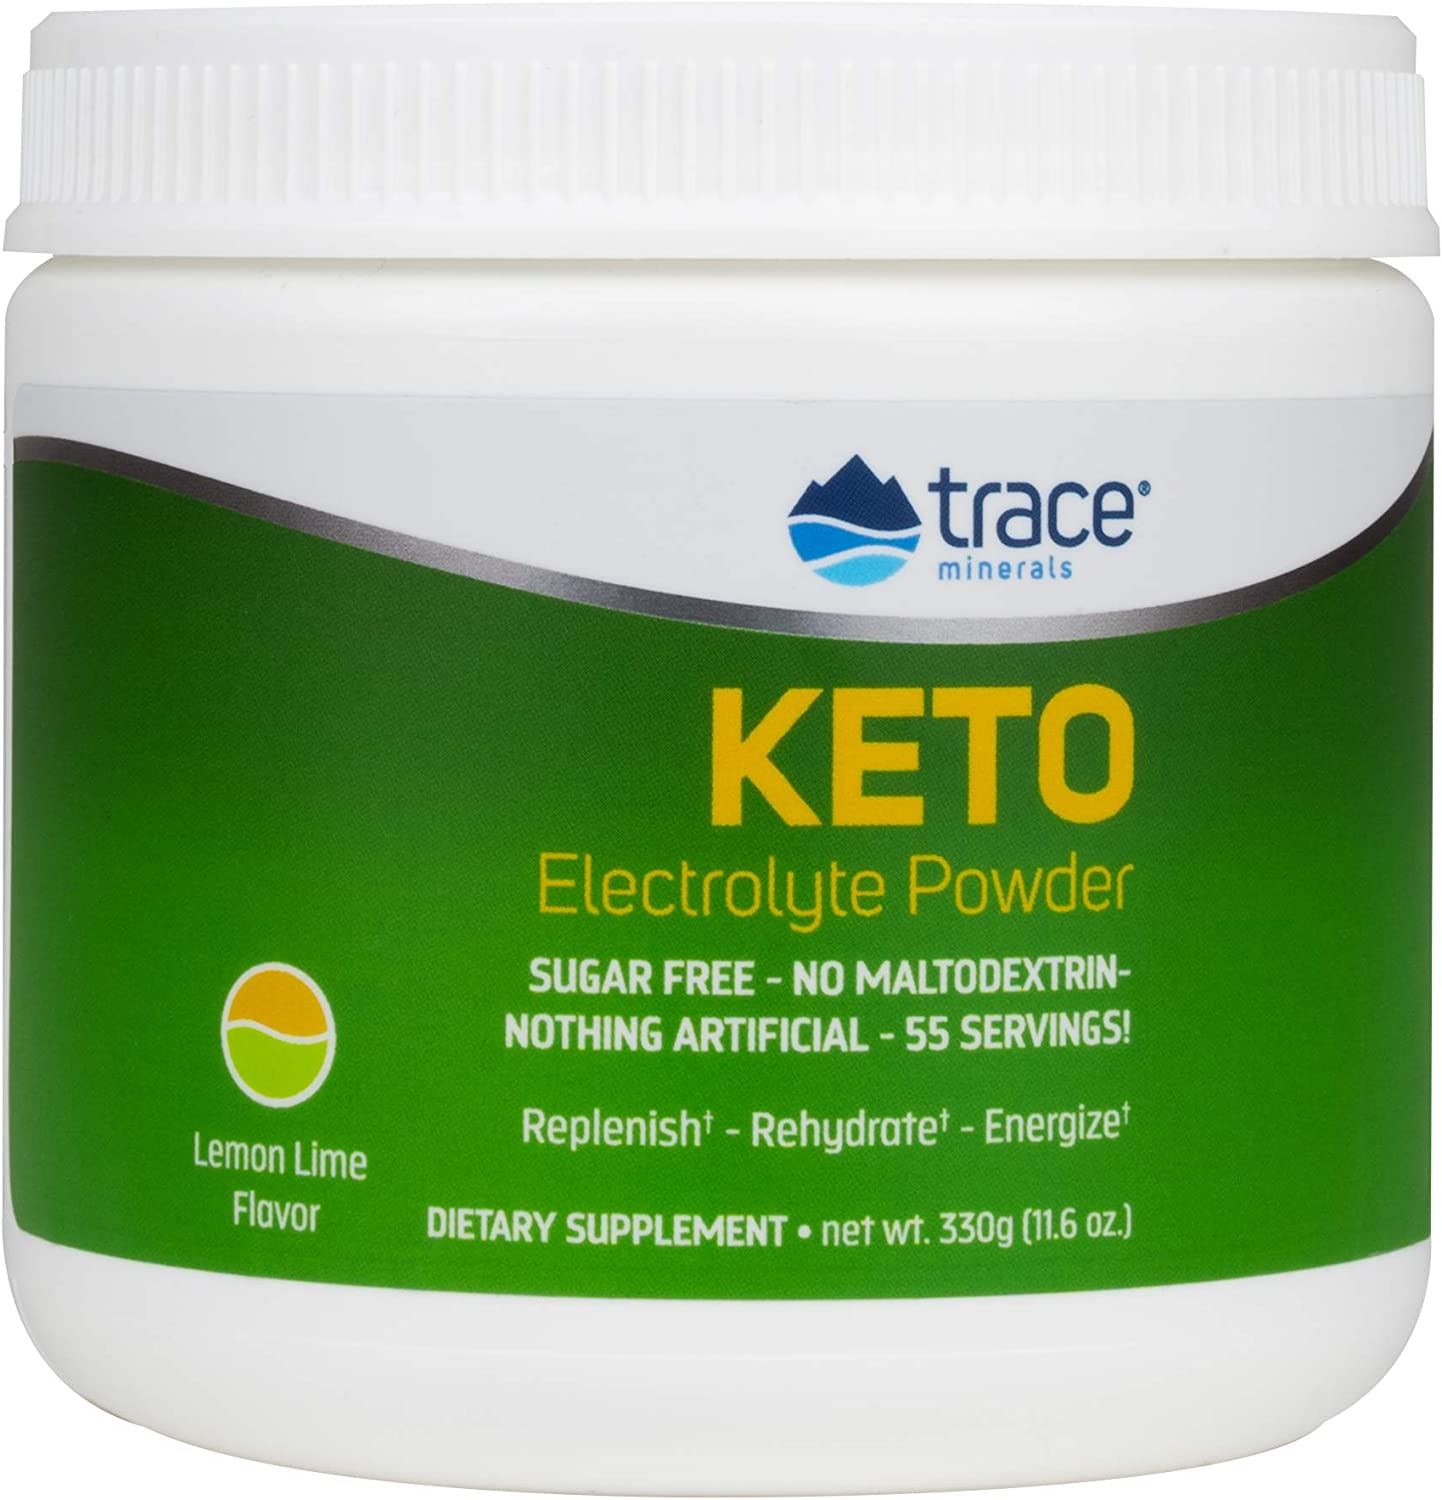 Trace Minerals Keto Electrolyte Powder Sugar Lime Free Max 76% New product!! OFF Lemon